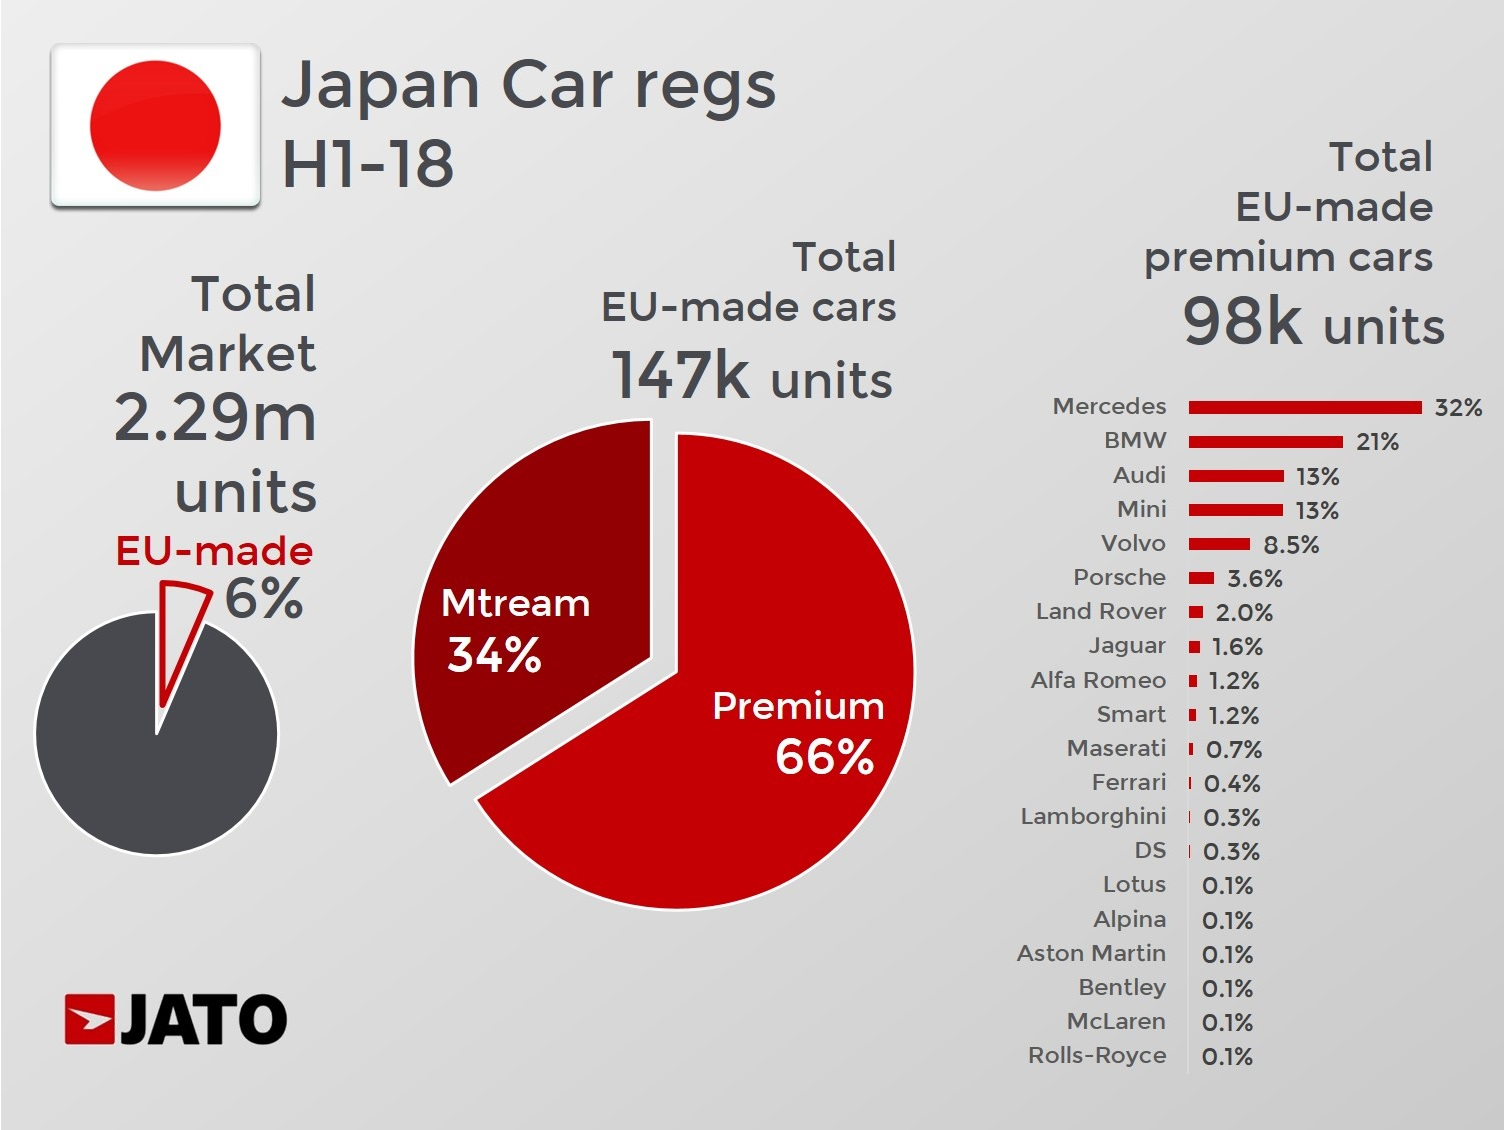 hight resolution of excluding the citroen c zero and peugeot ion the european cousins of the mitsubishi i miev which are produced in japan there are only four models that